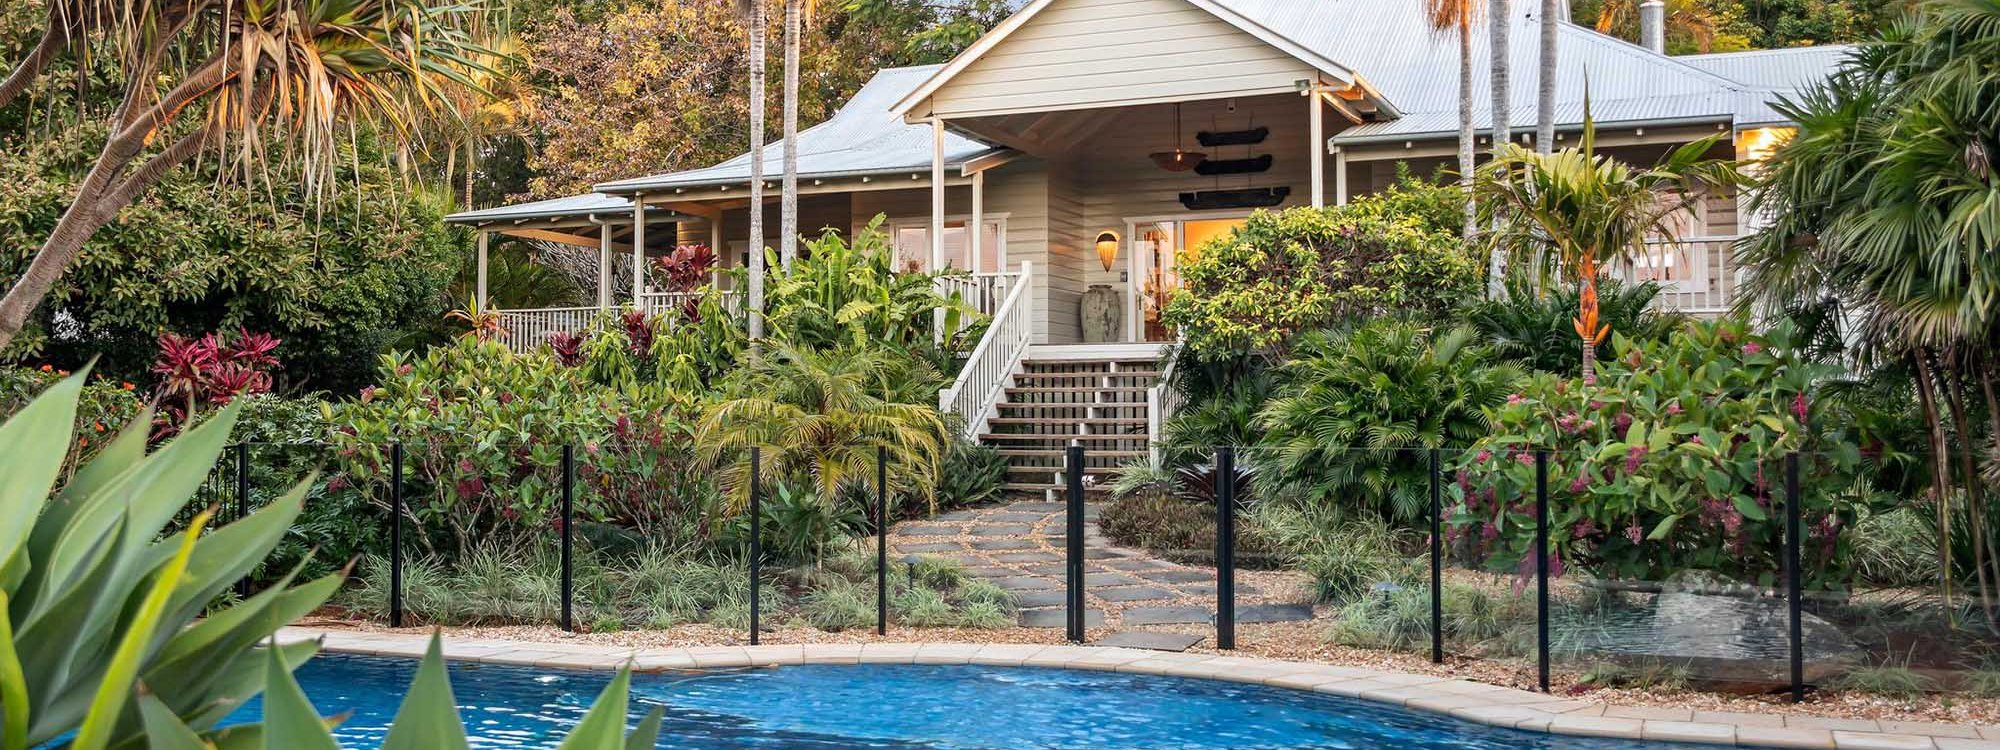 Bougainvillea House - Byron Bay - Daytime House and Pool